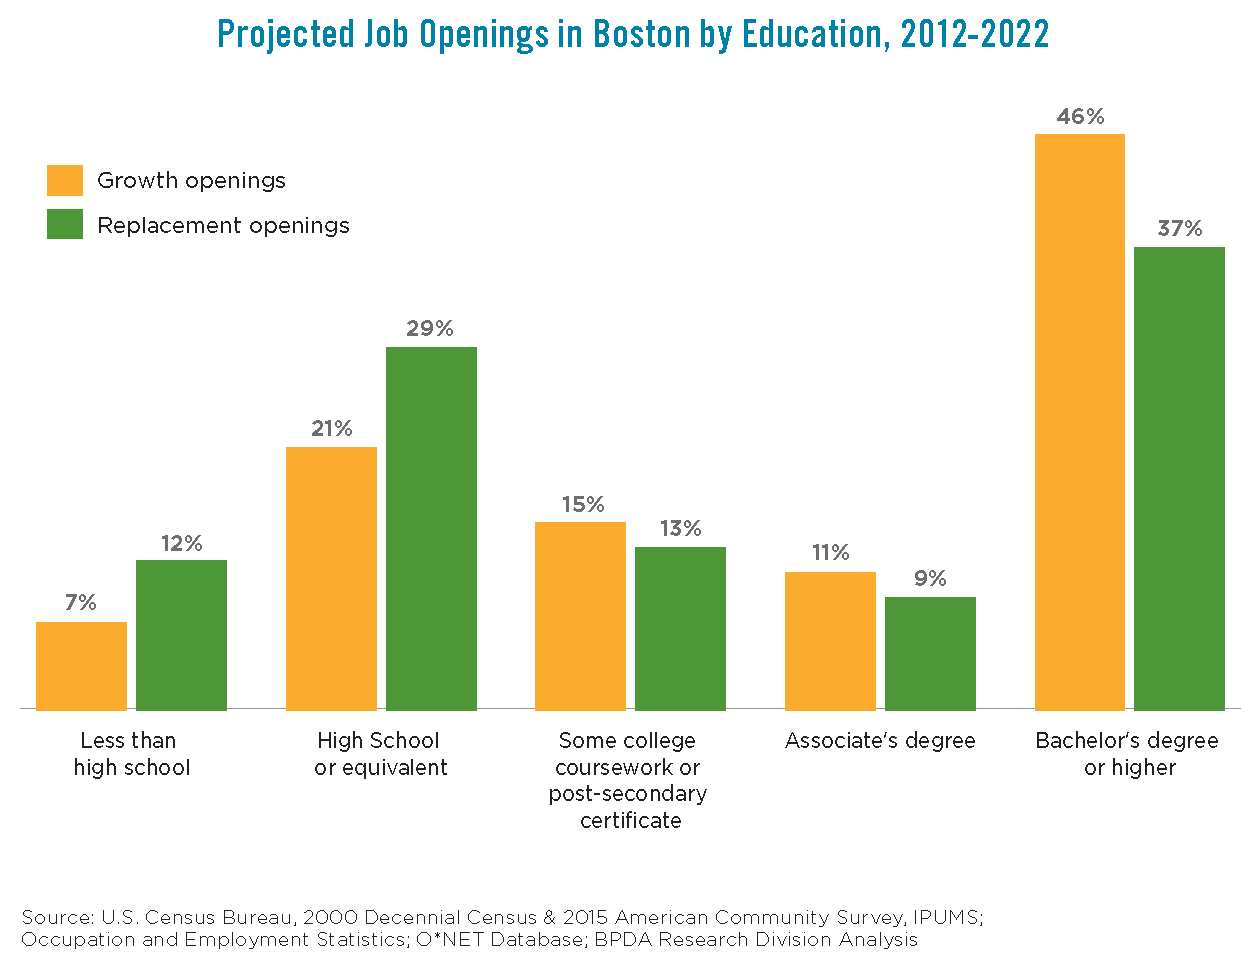 Porject Job Openings in Boston by Education 2012-2022